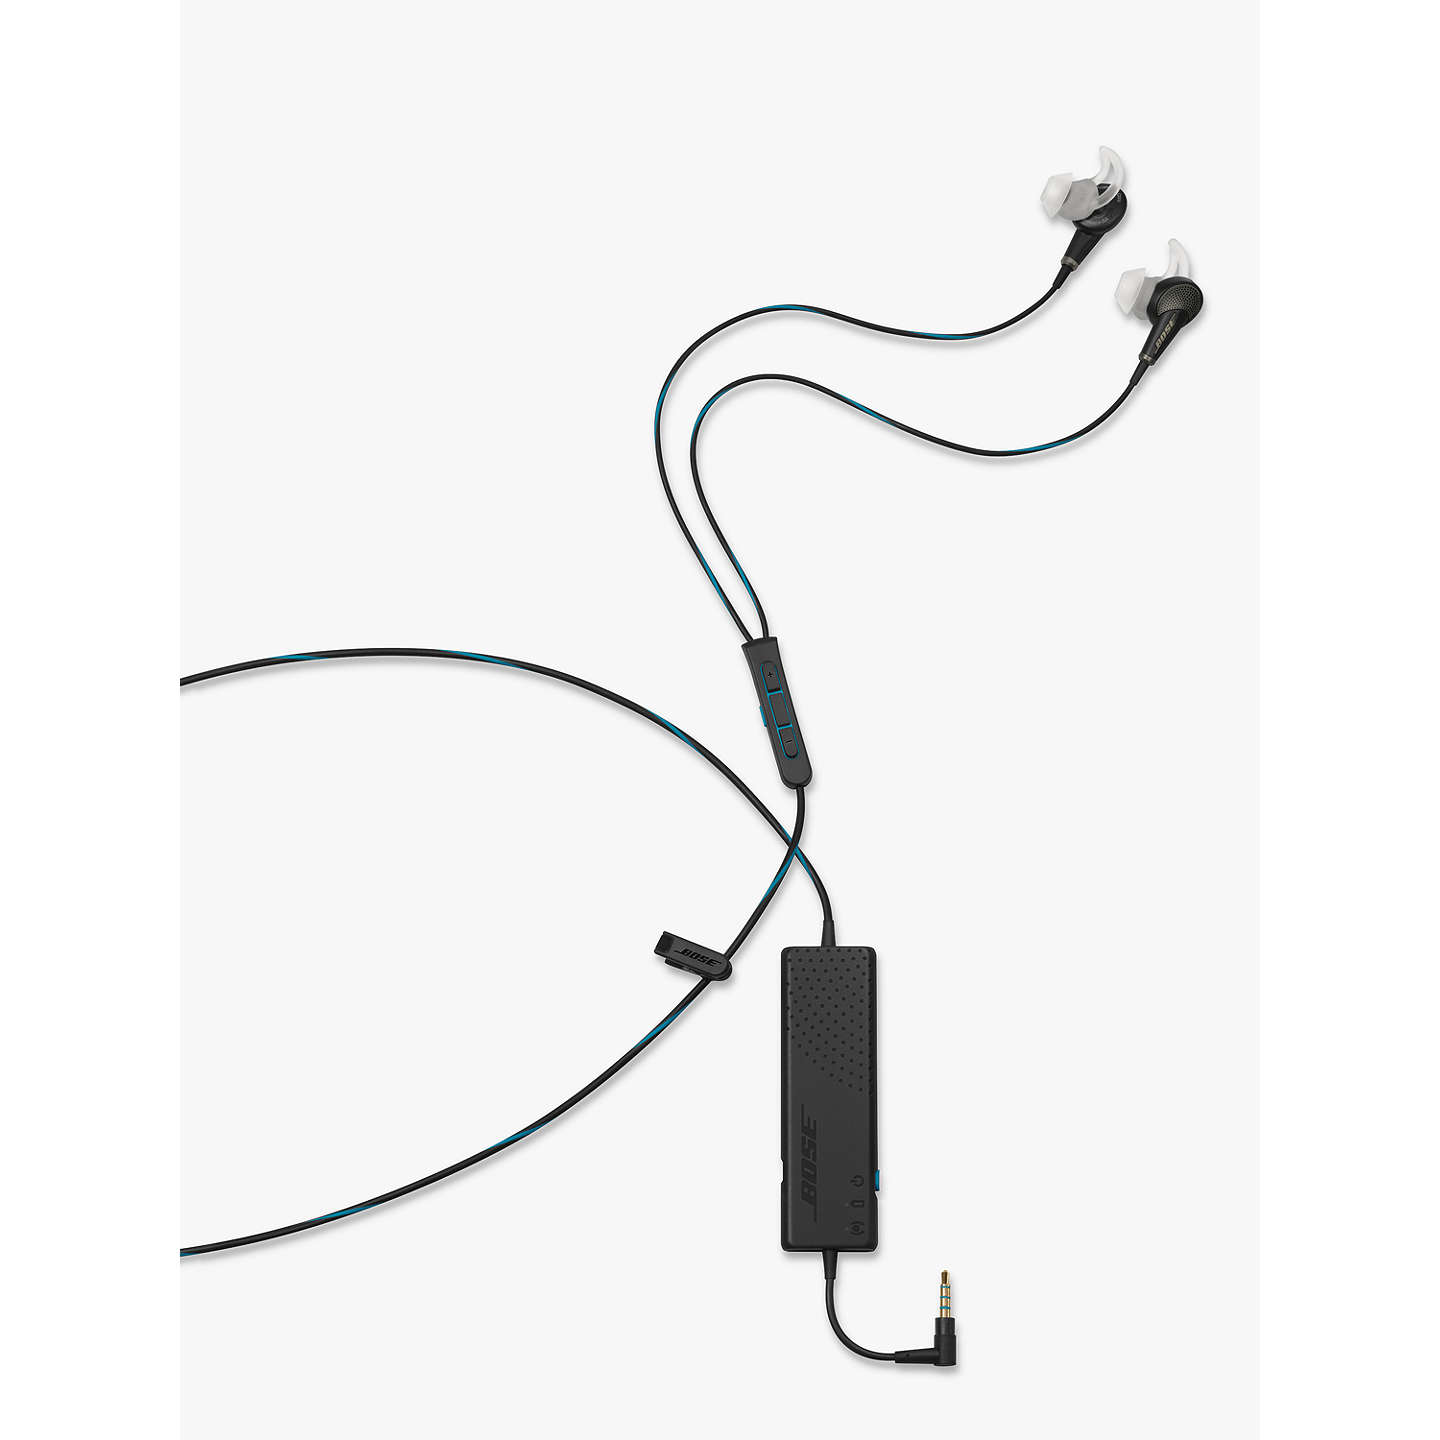 BuyBose® QuietComfort® Noise Cancelling® QC20 Acoustic In-Ear Headphones for iPad, iPhone and iPod, Black Online at johnlewis.com